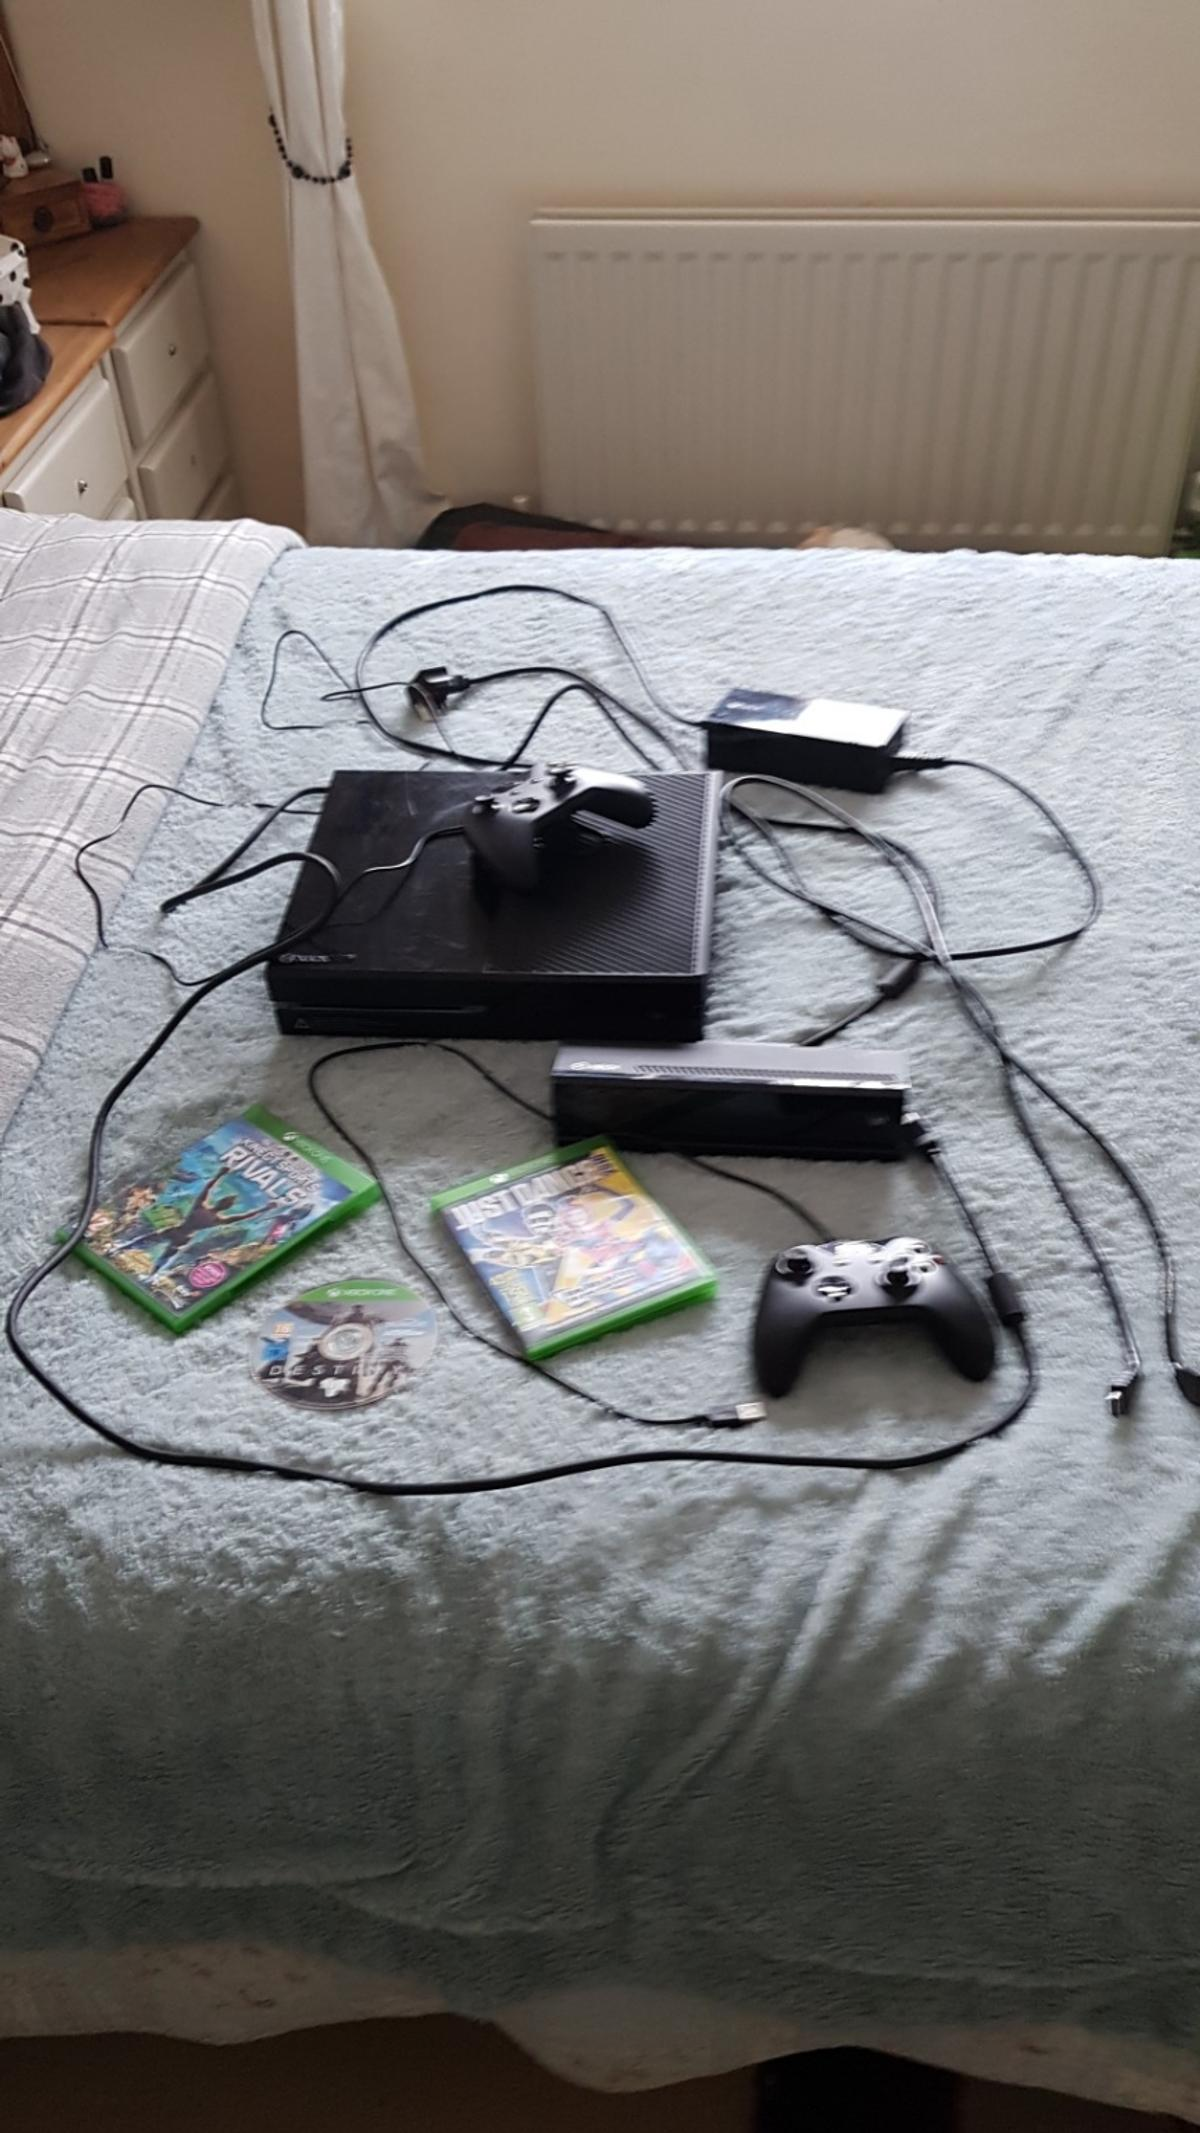 xbox one, kinect sensor, controllers, games